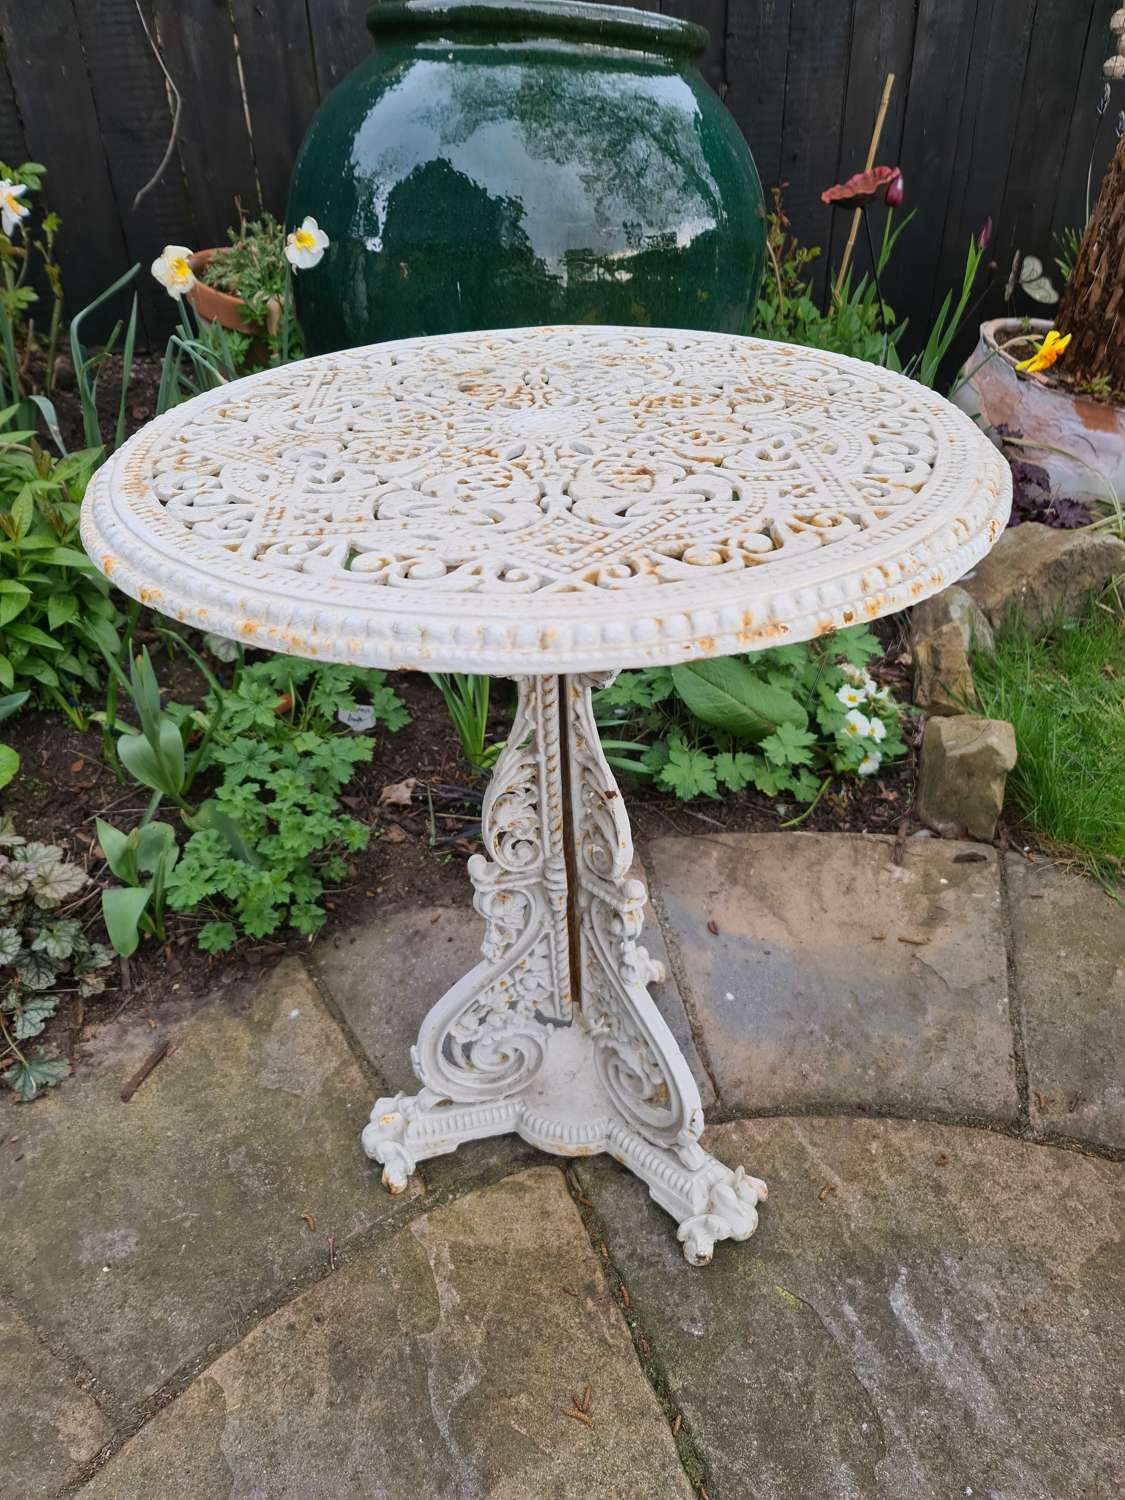 Rare Cast Iron Table - Coalbrookdale Christopher Dresser Pattern